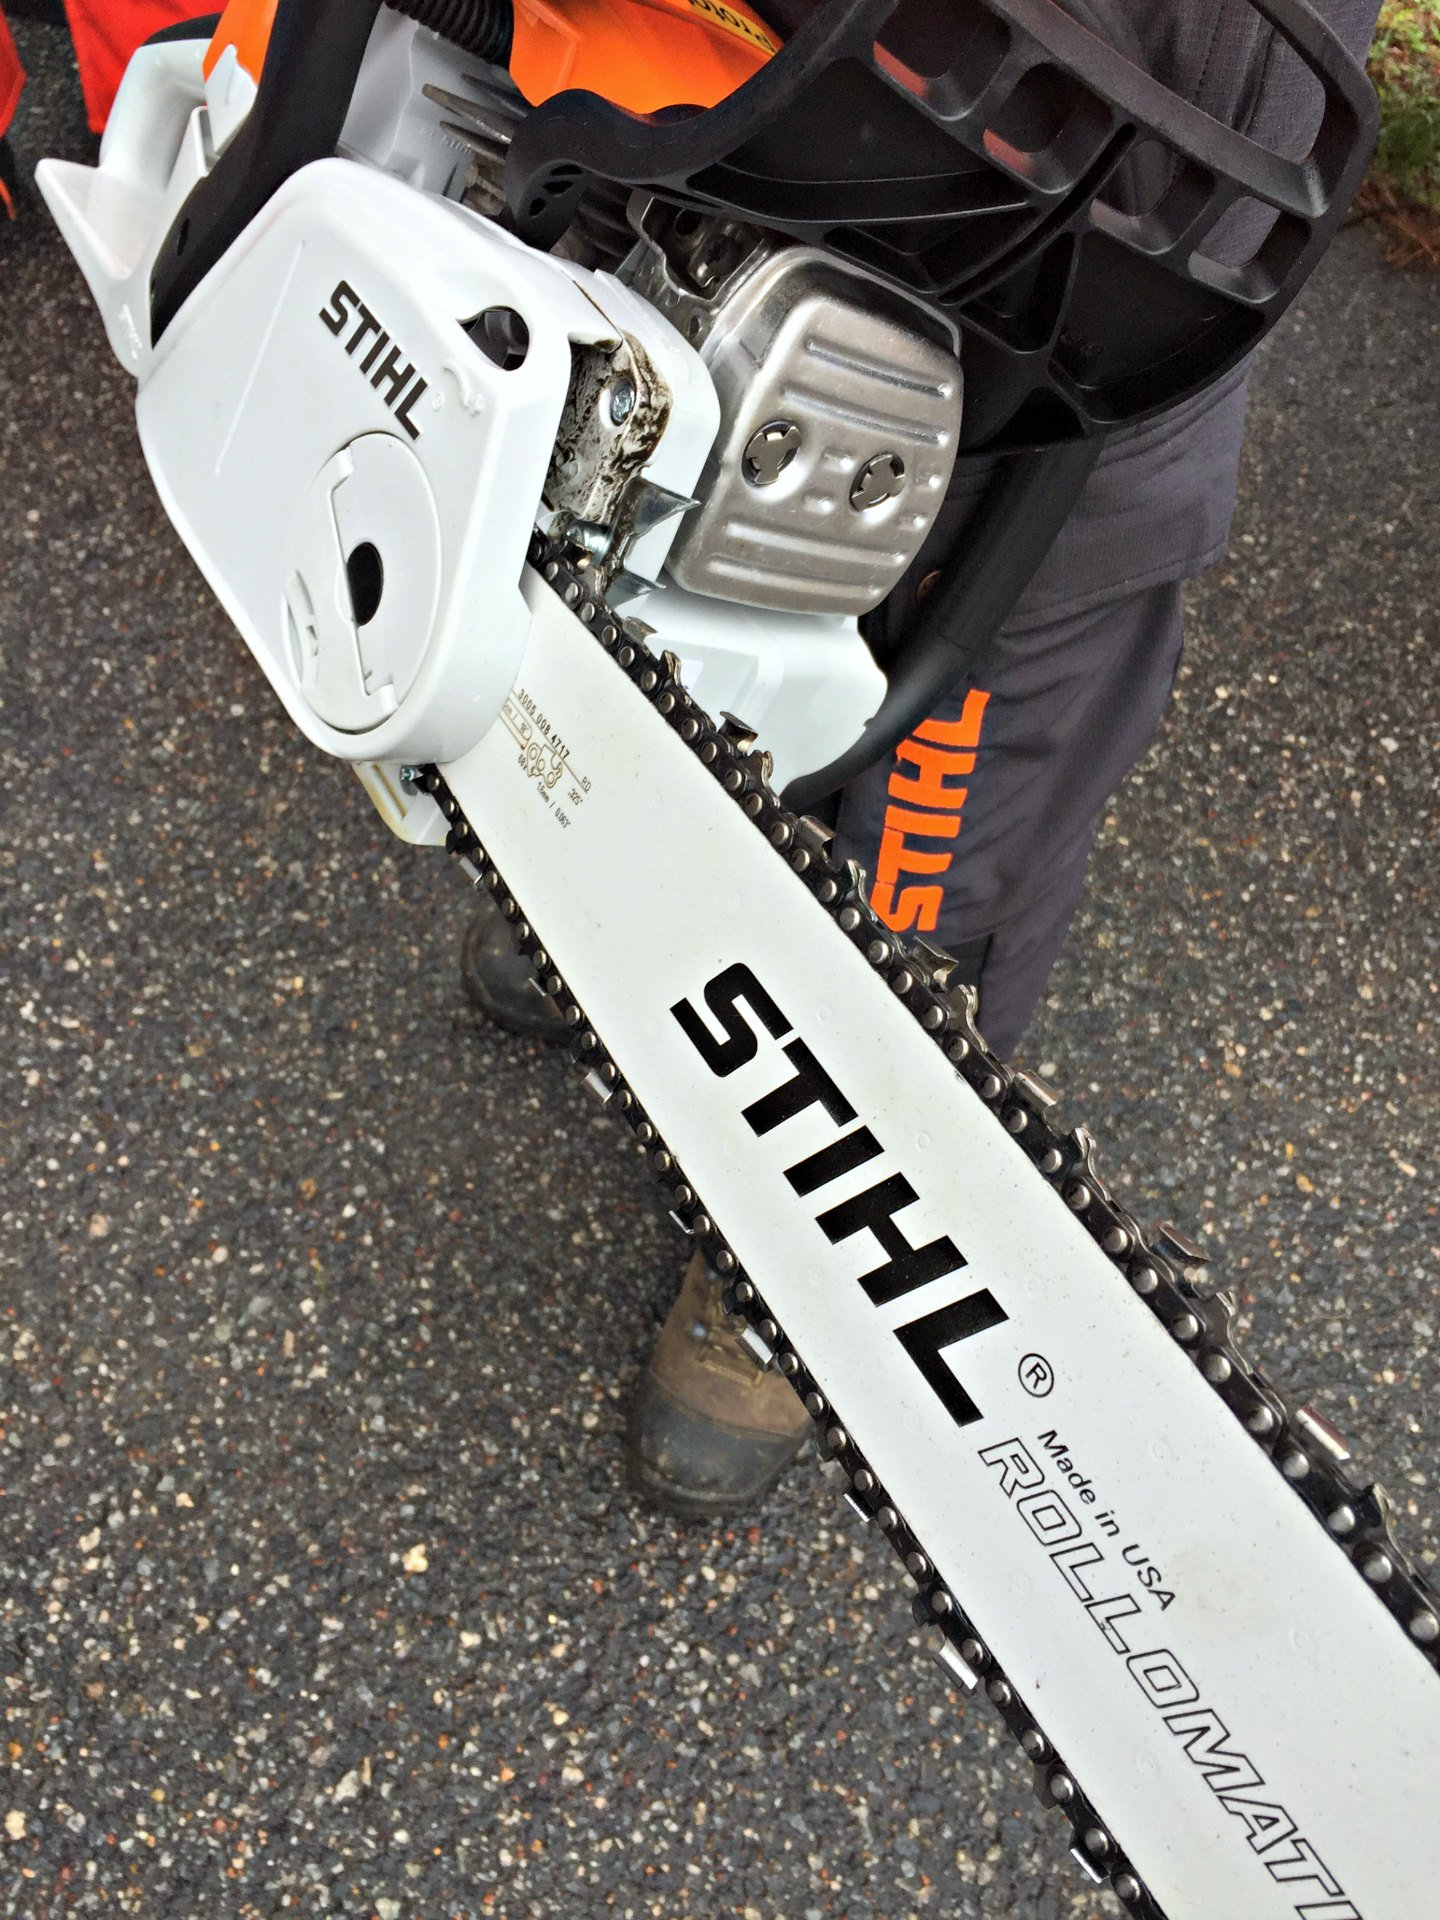 One of the Coolest Trips I've Ever Been On (Visiting STIHL USA)